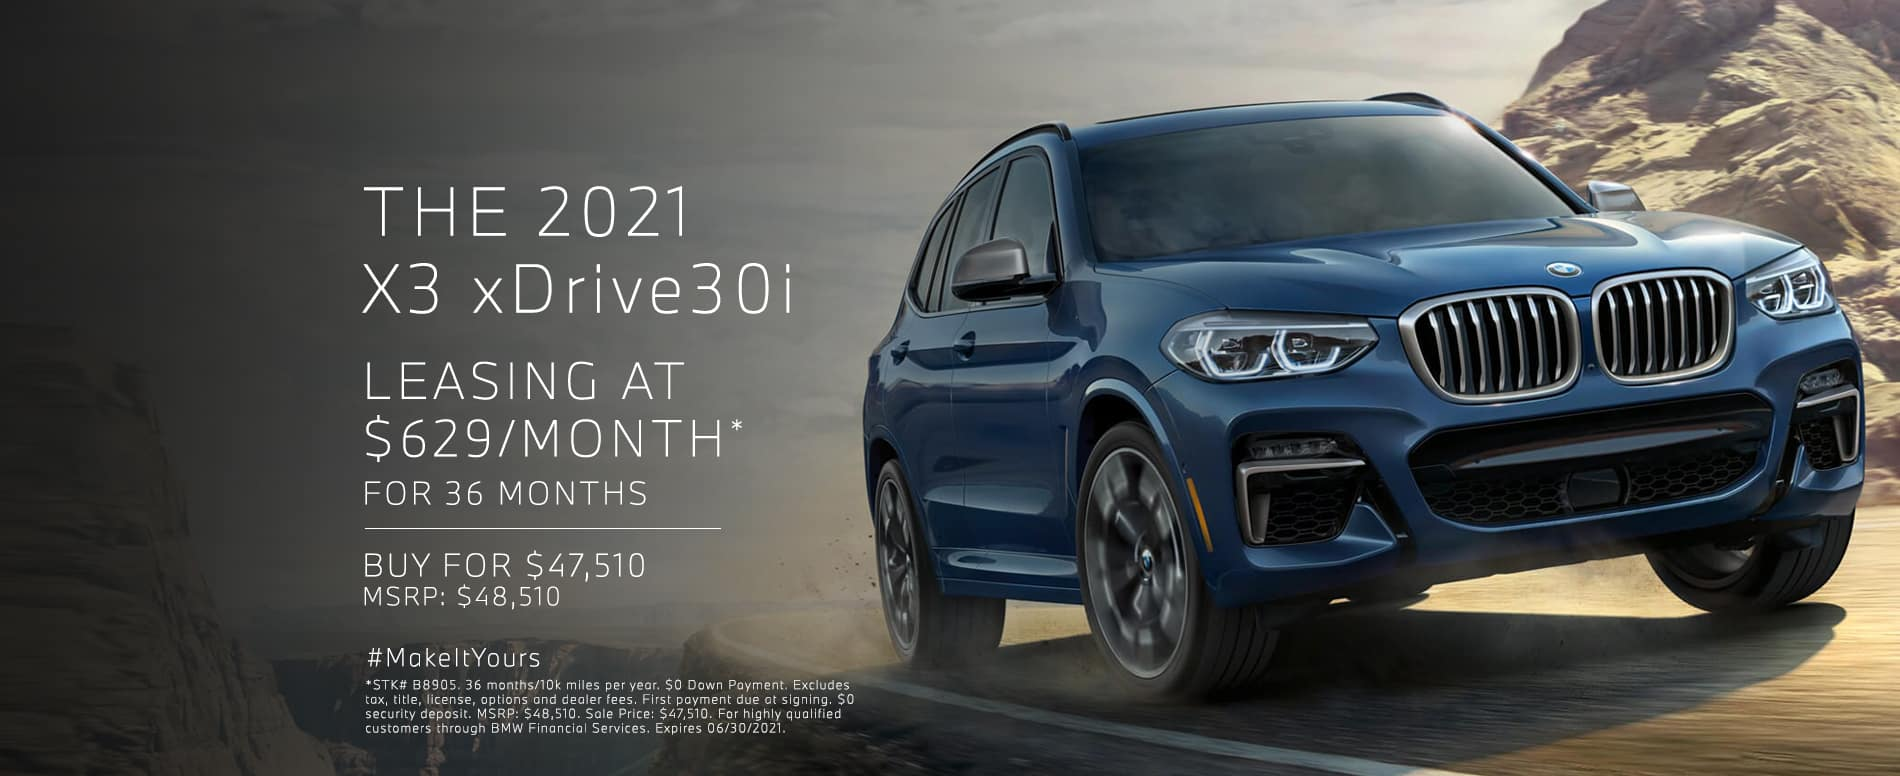 Lease a 2021 X3 for $629 per month. See dealer for details.